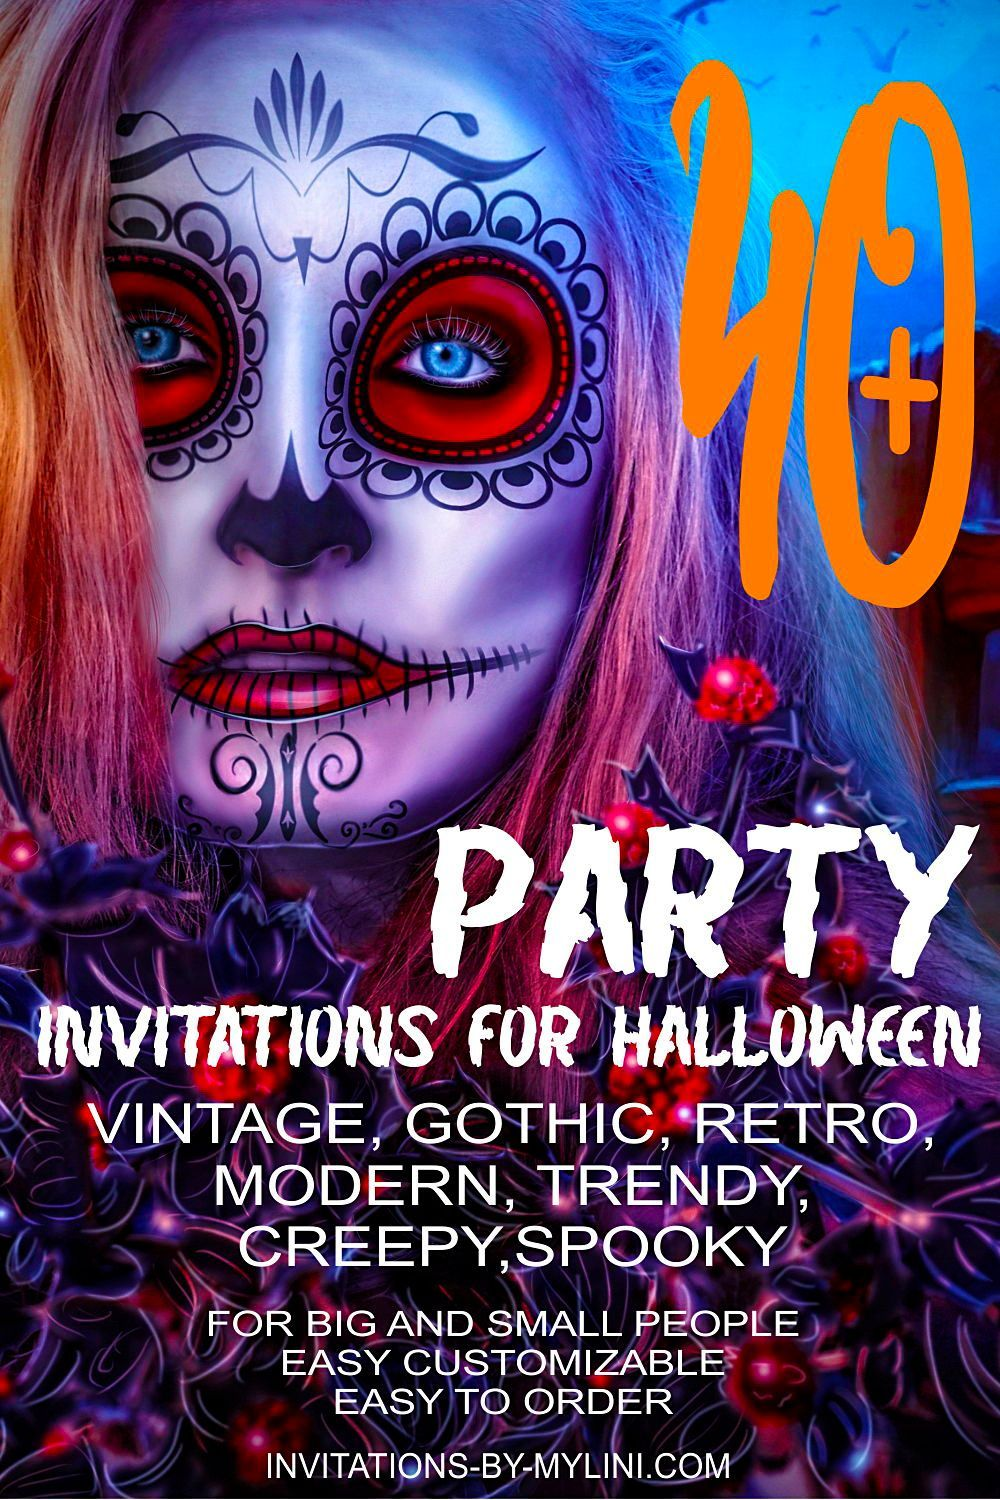 With our Halloween ideas for your Halloween party, your Halloween party invitations will be great. Together with your halloween party ideas for house decoration, your guests will be delighted. Order today and your halloween party invitations.